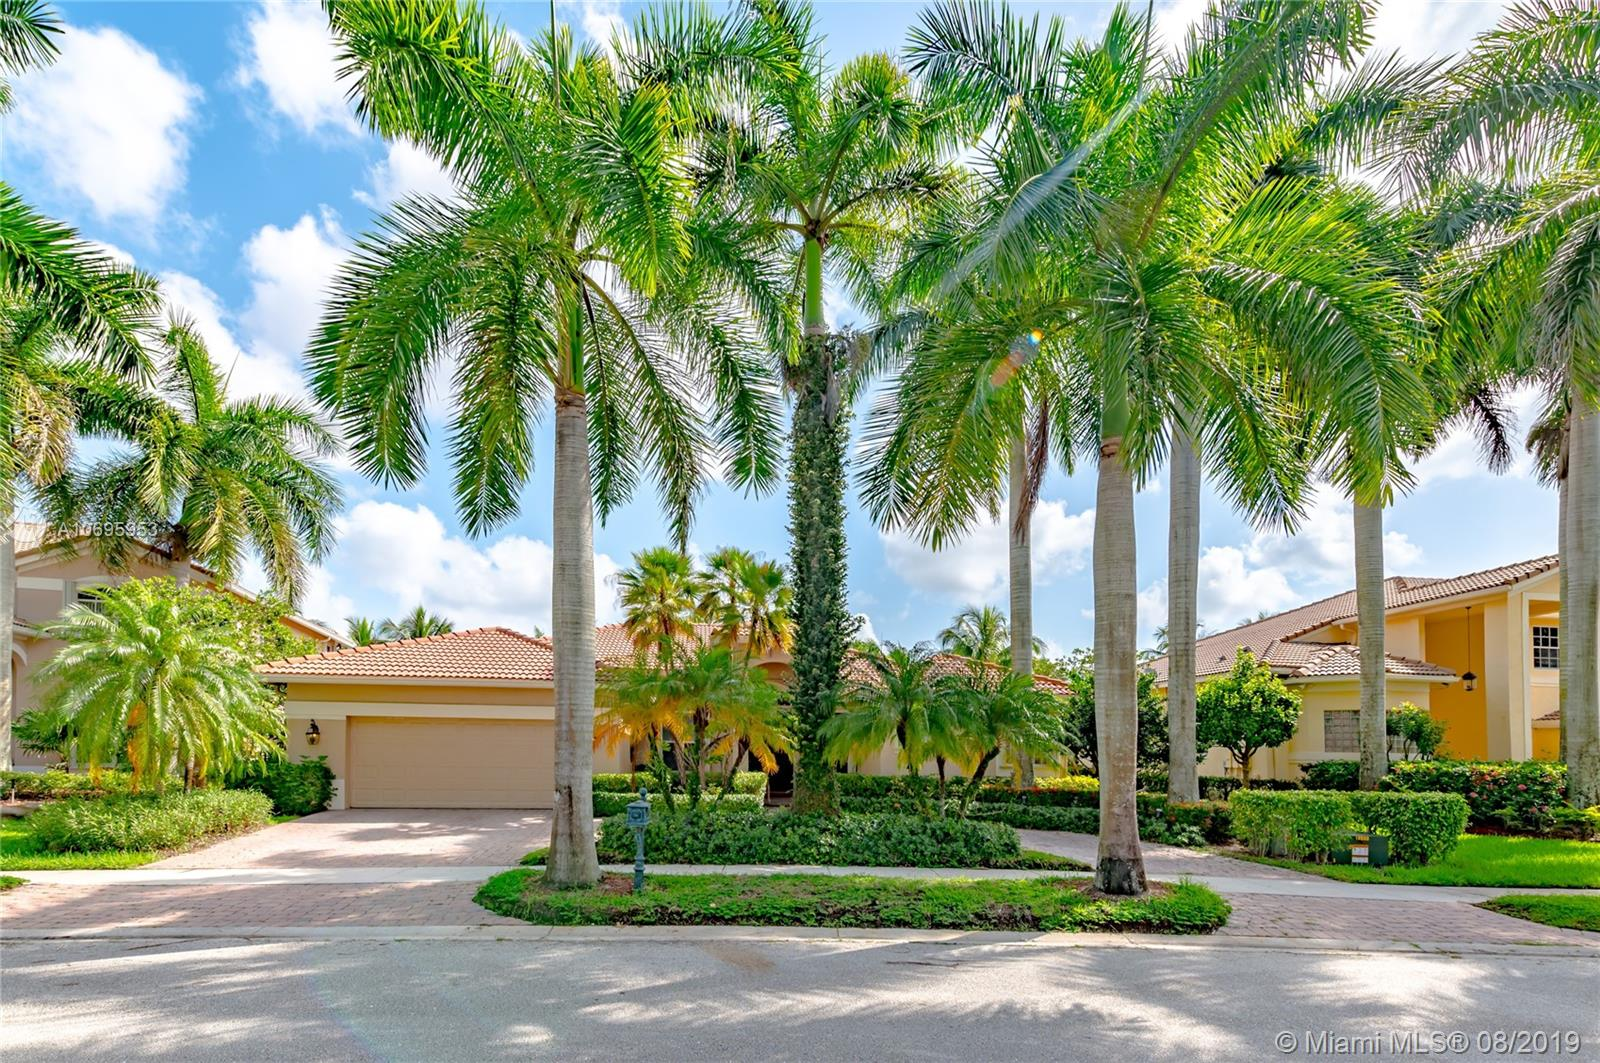 Enjoy this beautiful home in one of the best communities in the city of Weston, Weston Hills.  Home features 5 bedrooms, 3 full baths, 2 car garage. Neutral tile in all areas and neutral colors thruout the home. Great triple split floor plan with open kitchen and lots of room to entertain. Stainless steal appliances and granite countertops. Fully fenced patio with gorgeous pool area and gardens.  Accordion shutters. Short walk to playground. A+ Schools A Must See!!!